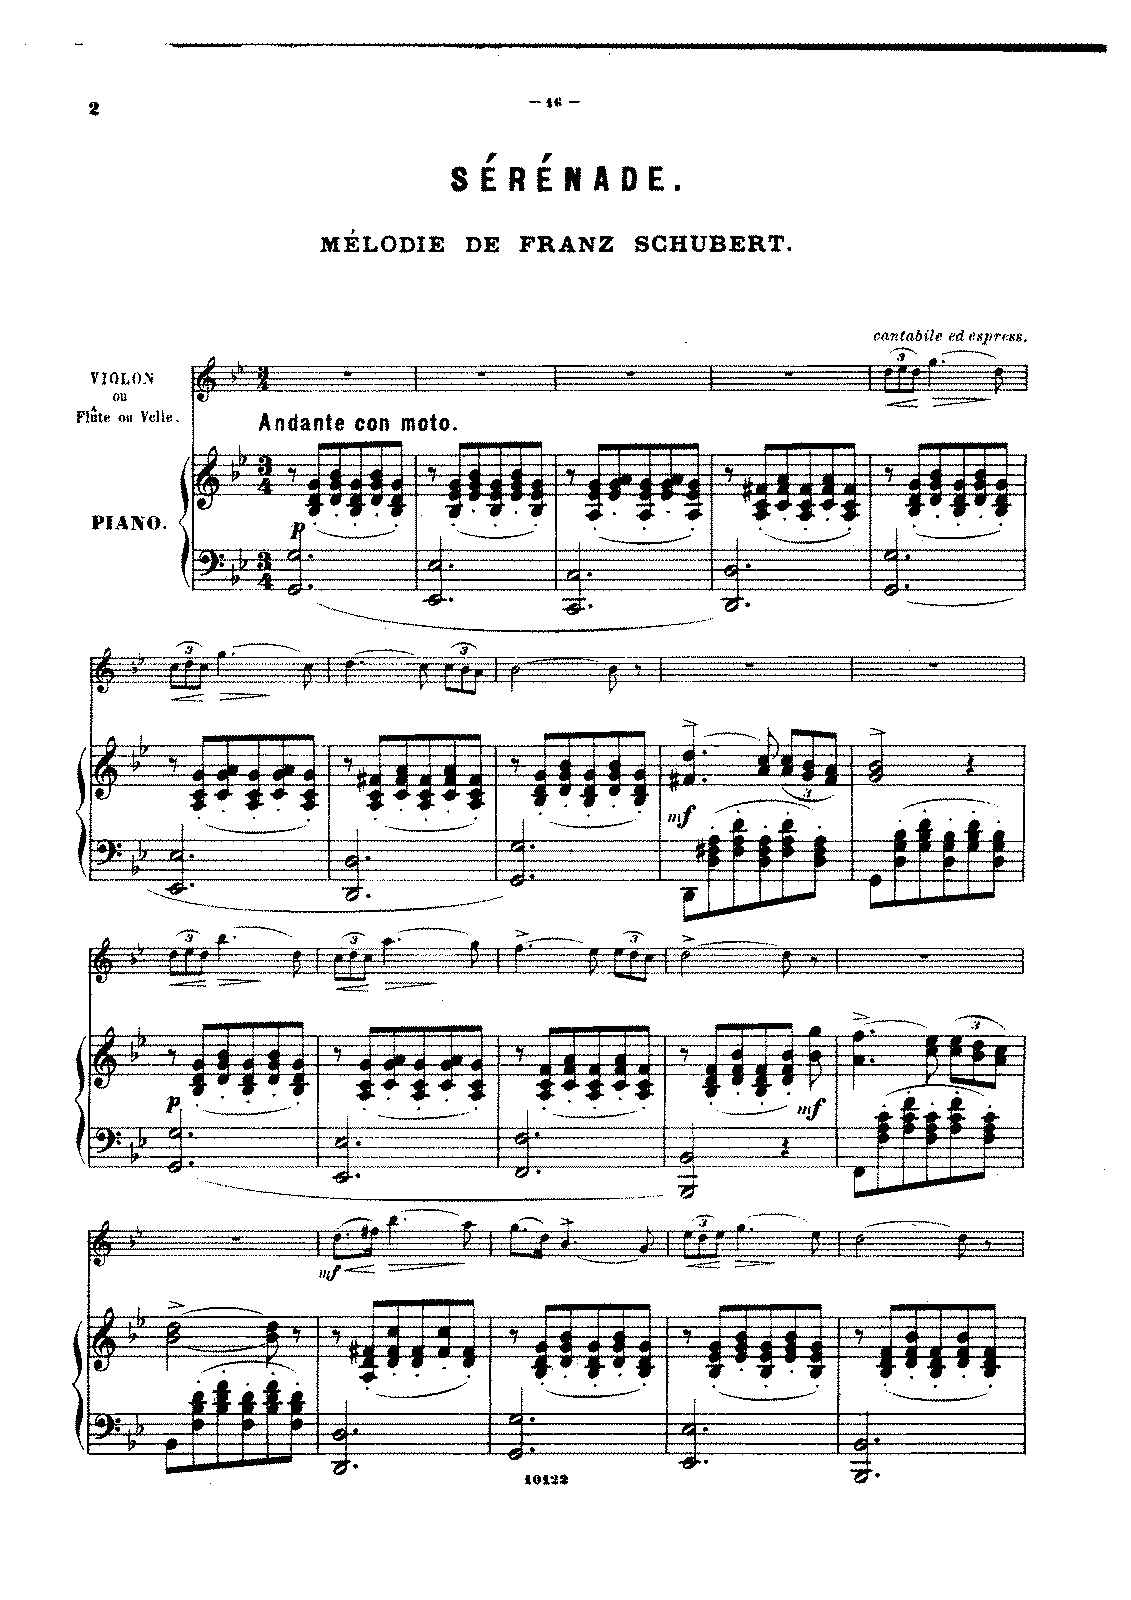 PMLP02204-Schubert - Serenade for Cello and Piano score.pdf